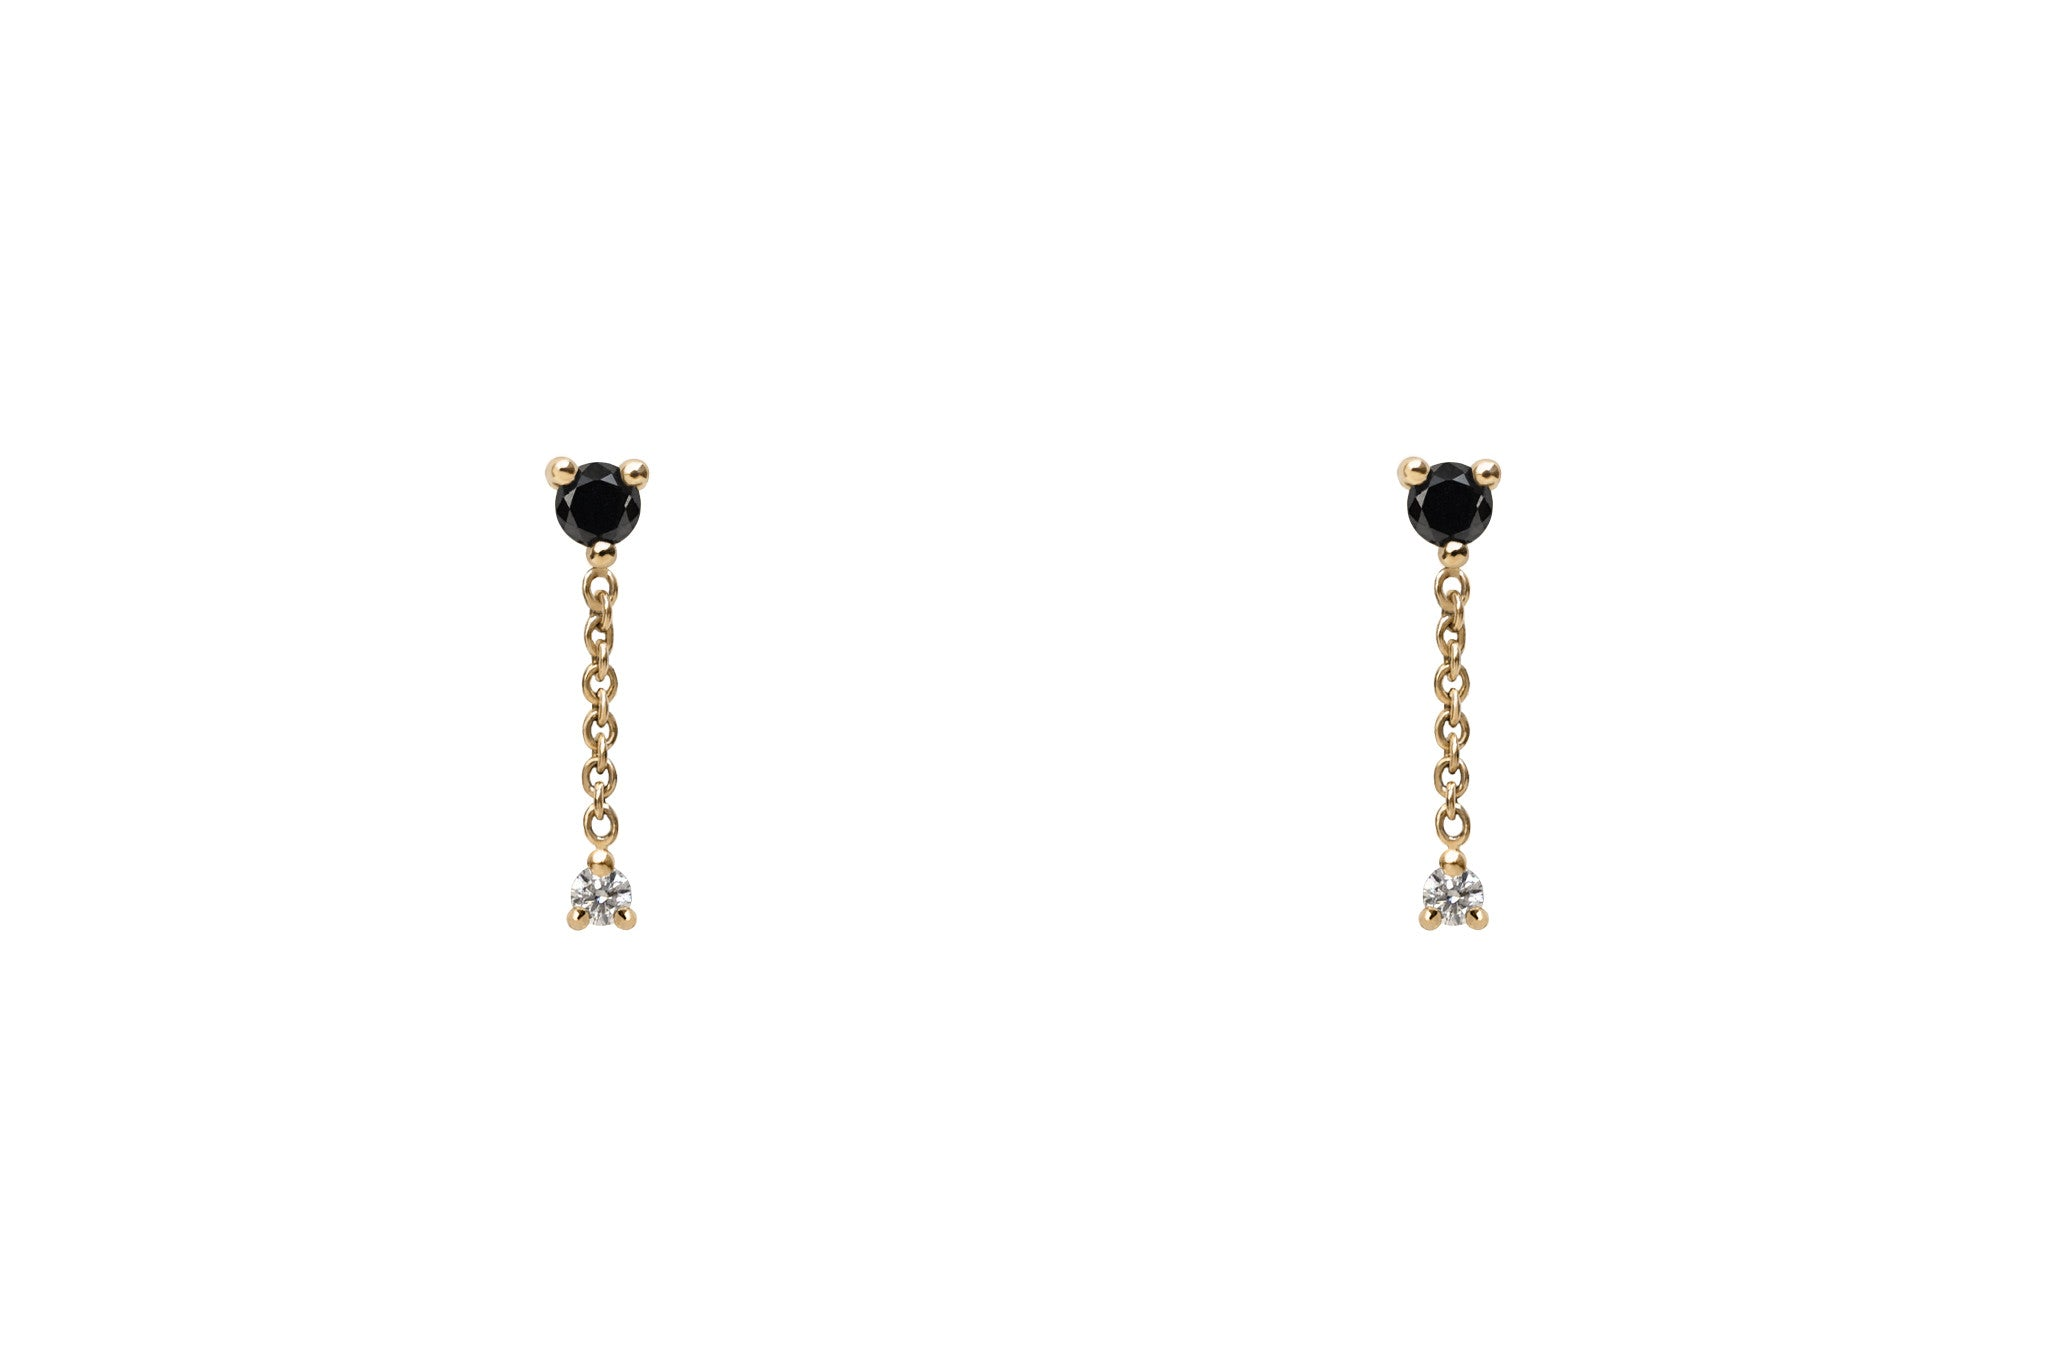 14k Gold Black and White Diamond Chain Drop Earrings E2328